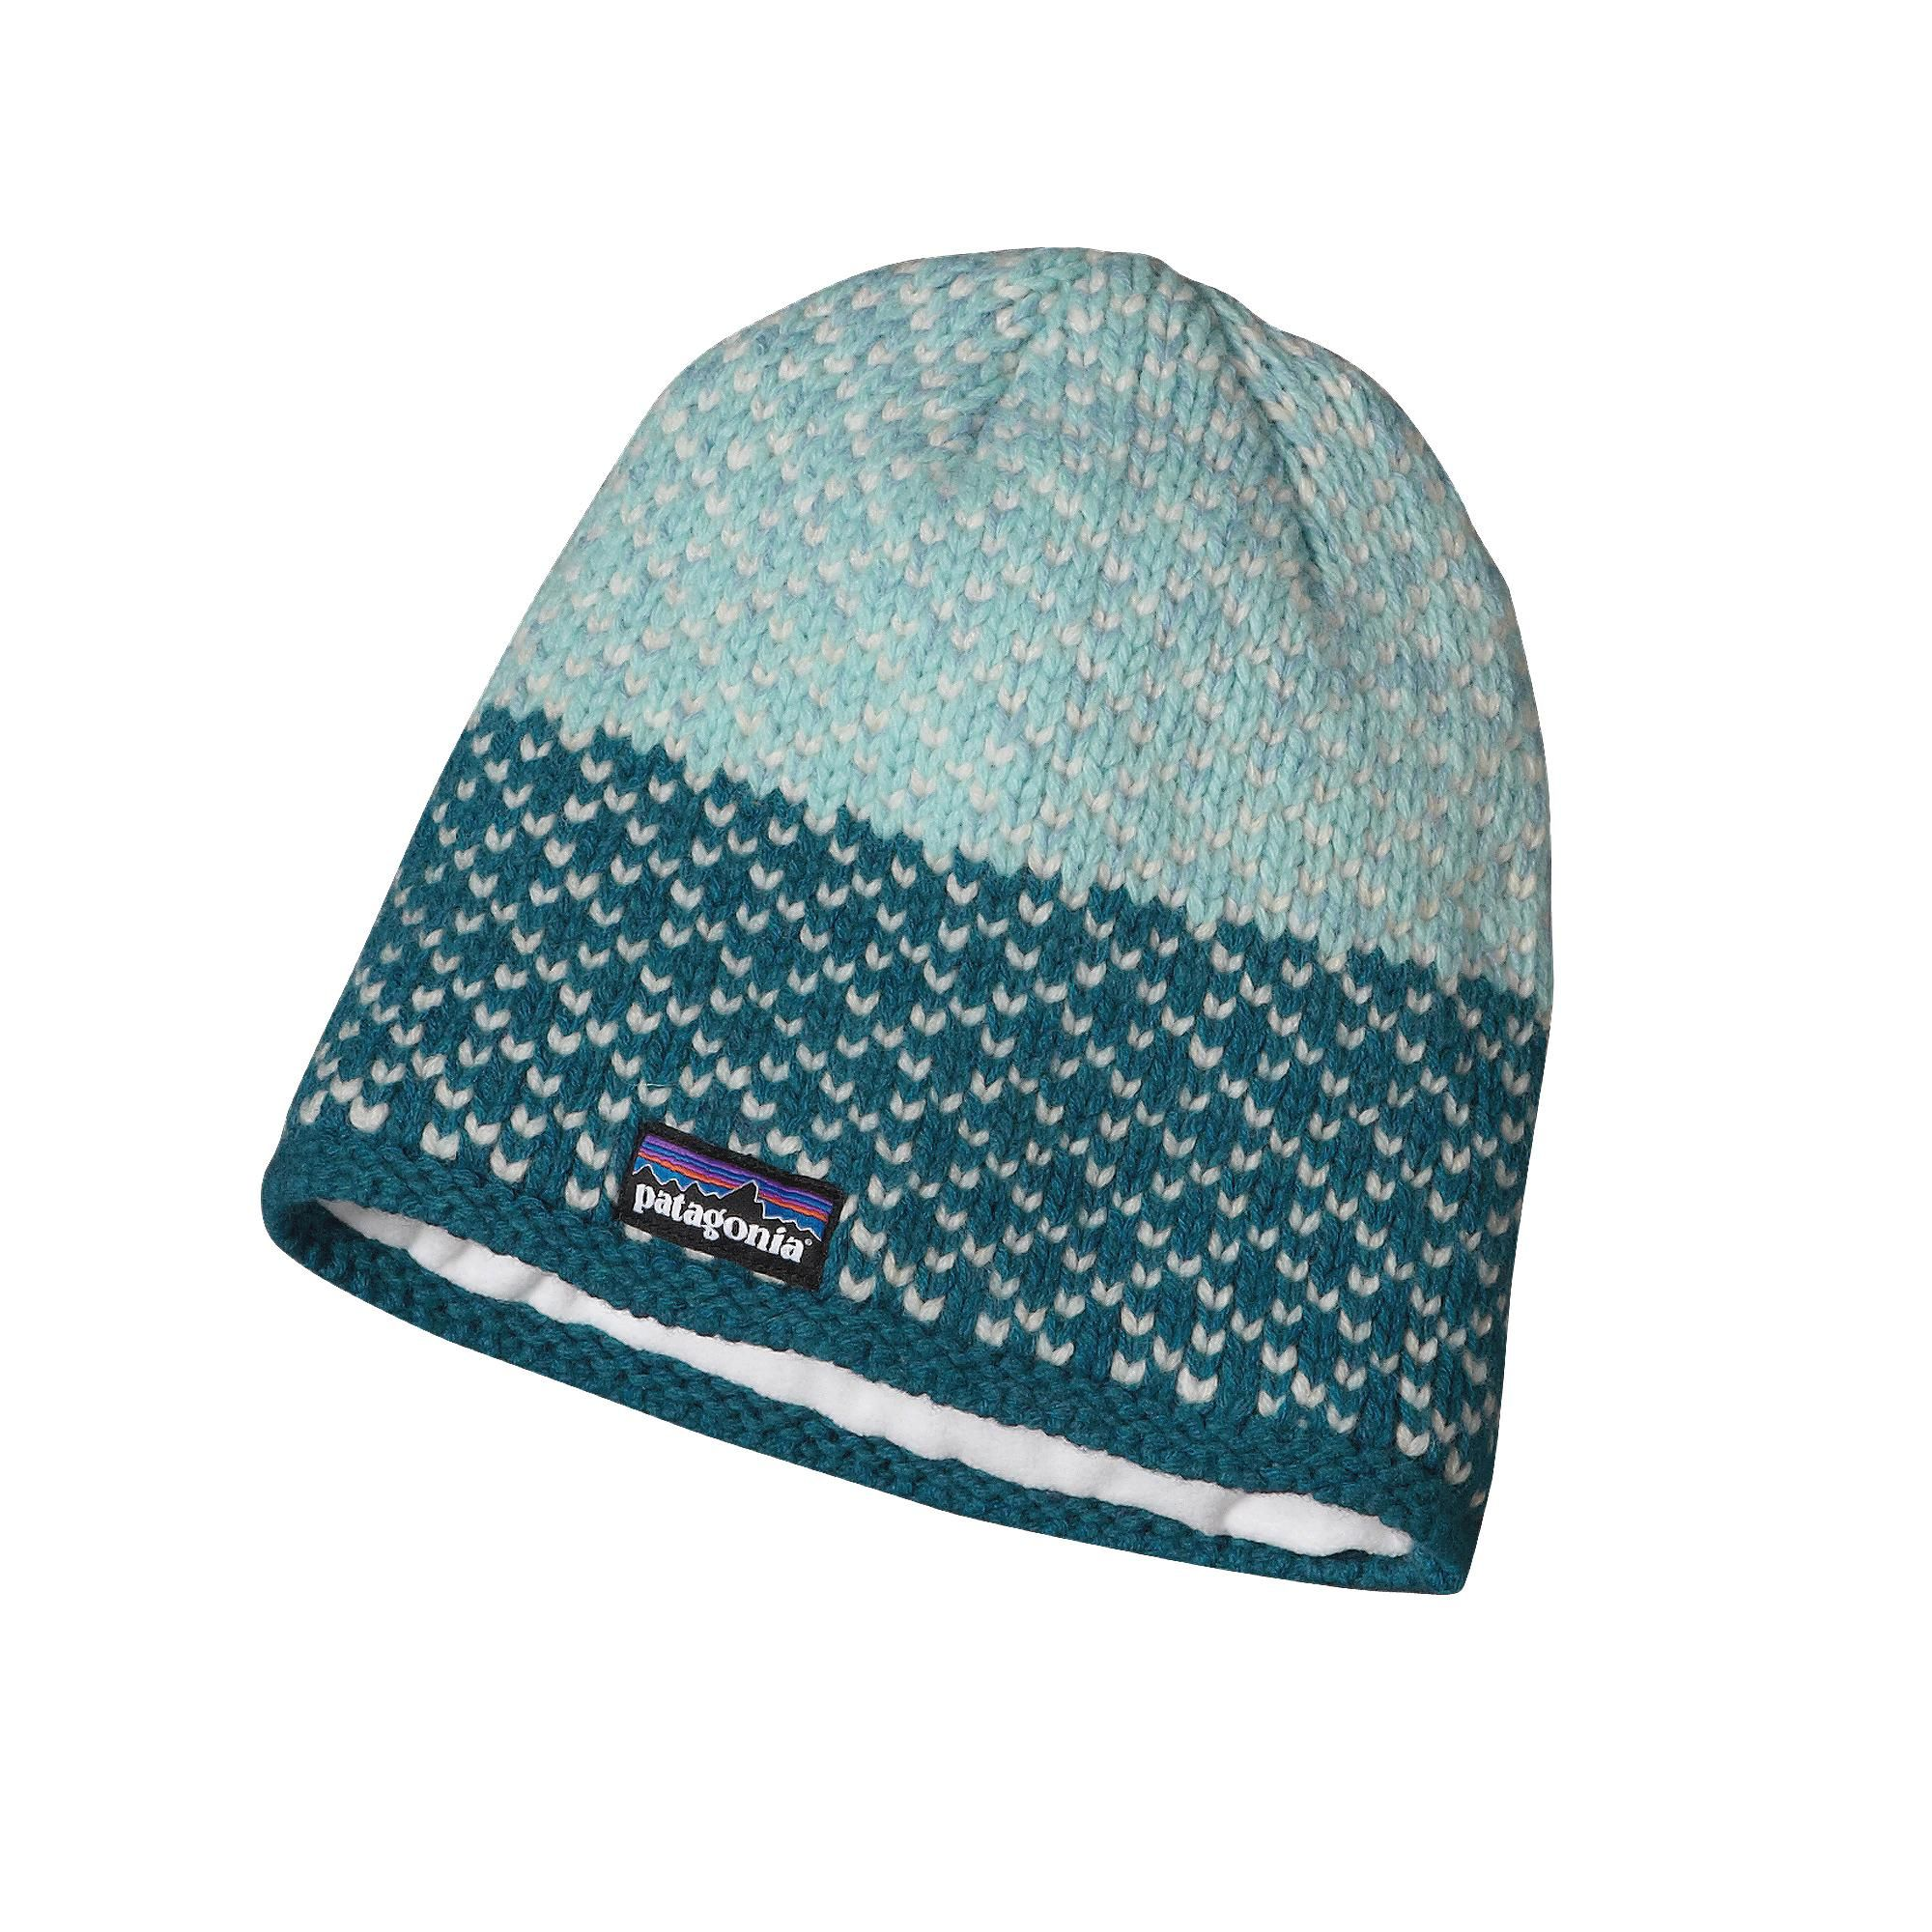 c36eb5e8302 Patagonia Women s Beatrice Beanie - Updated with a new knit pattern ...